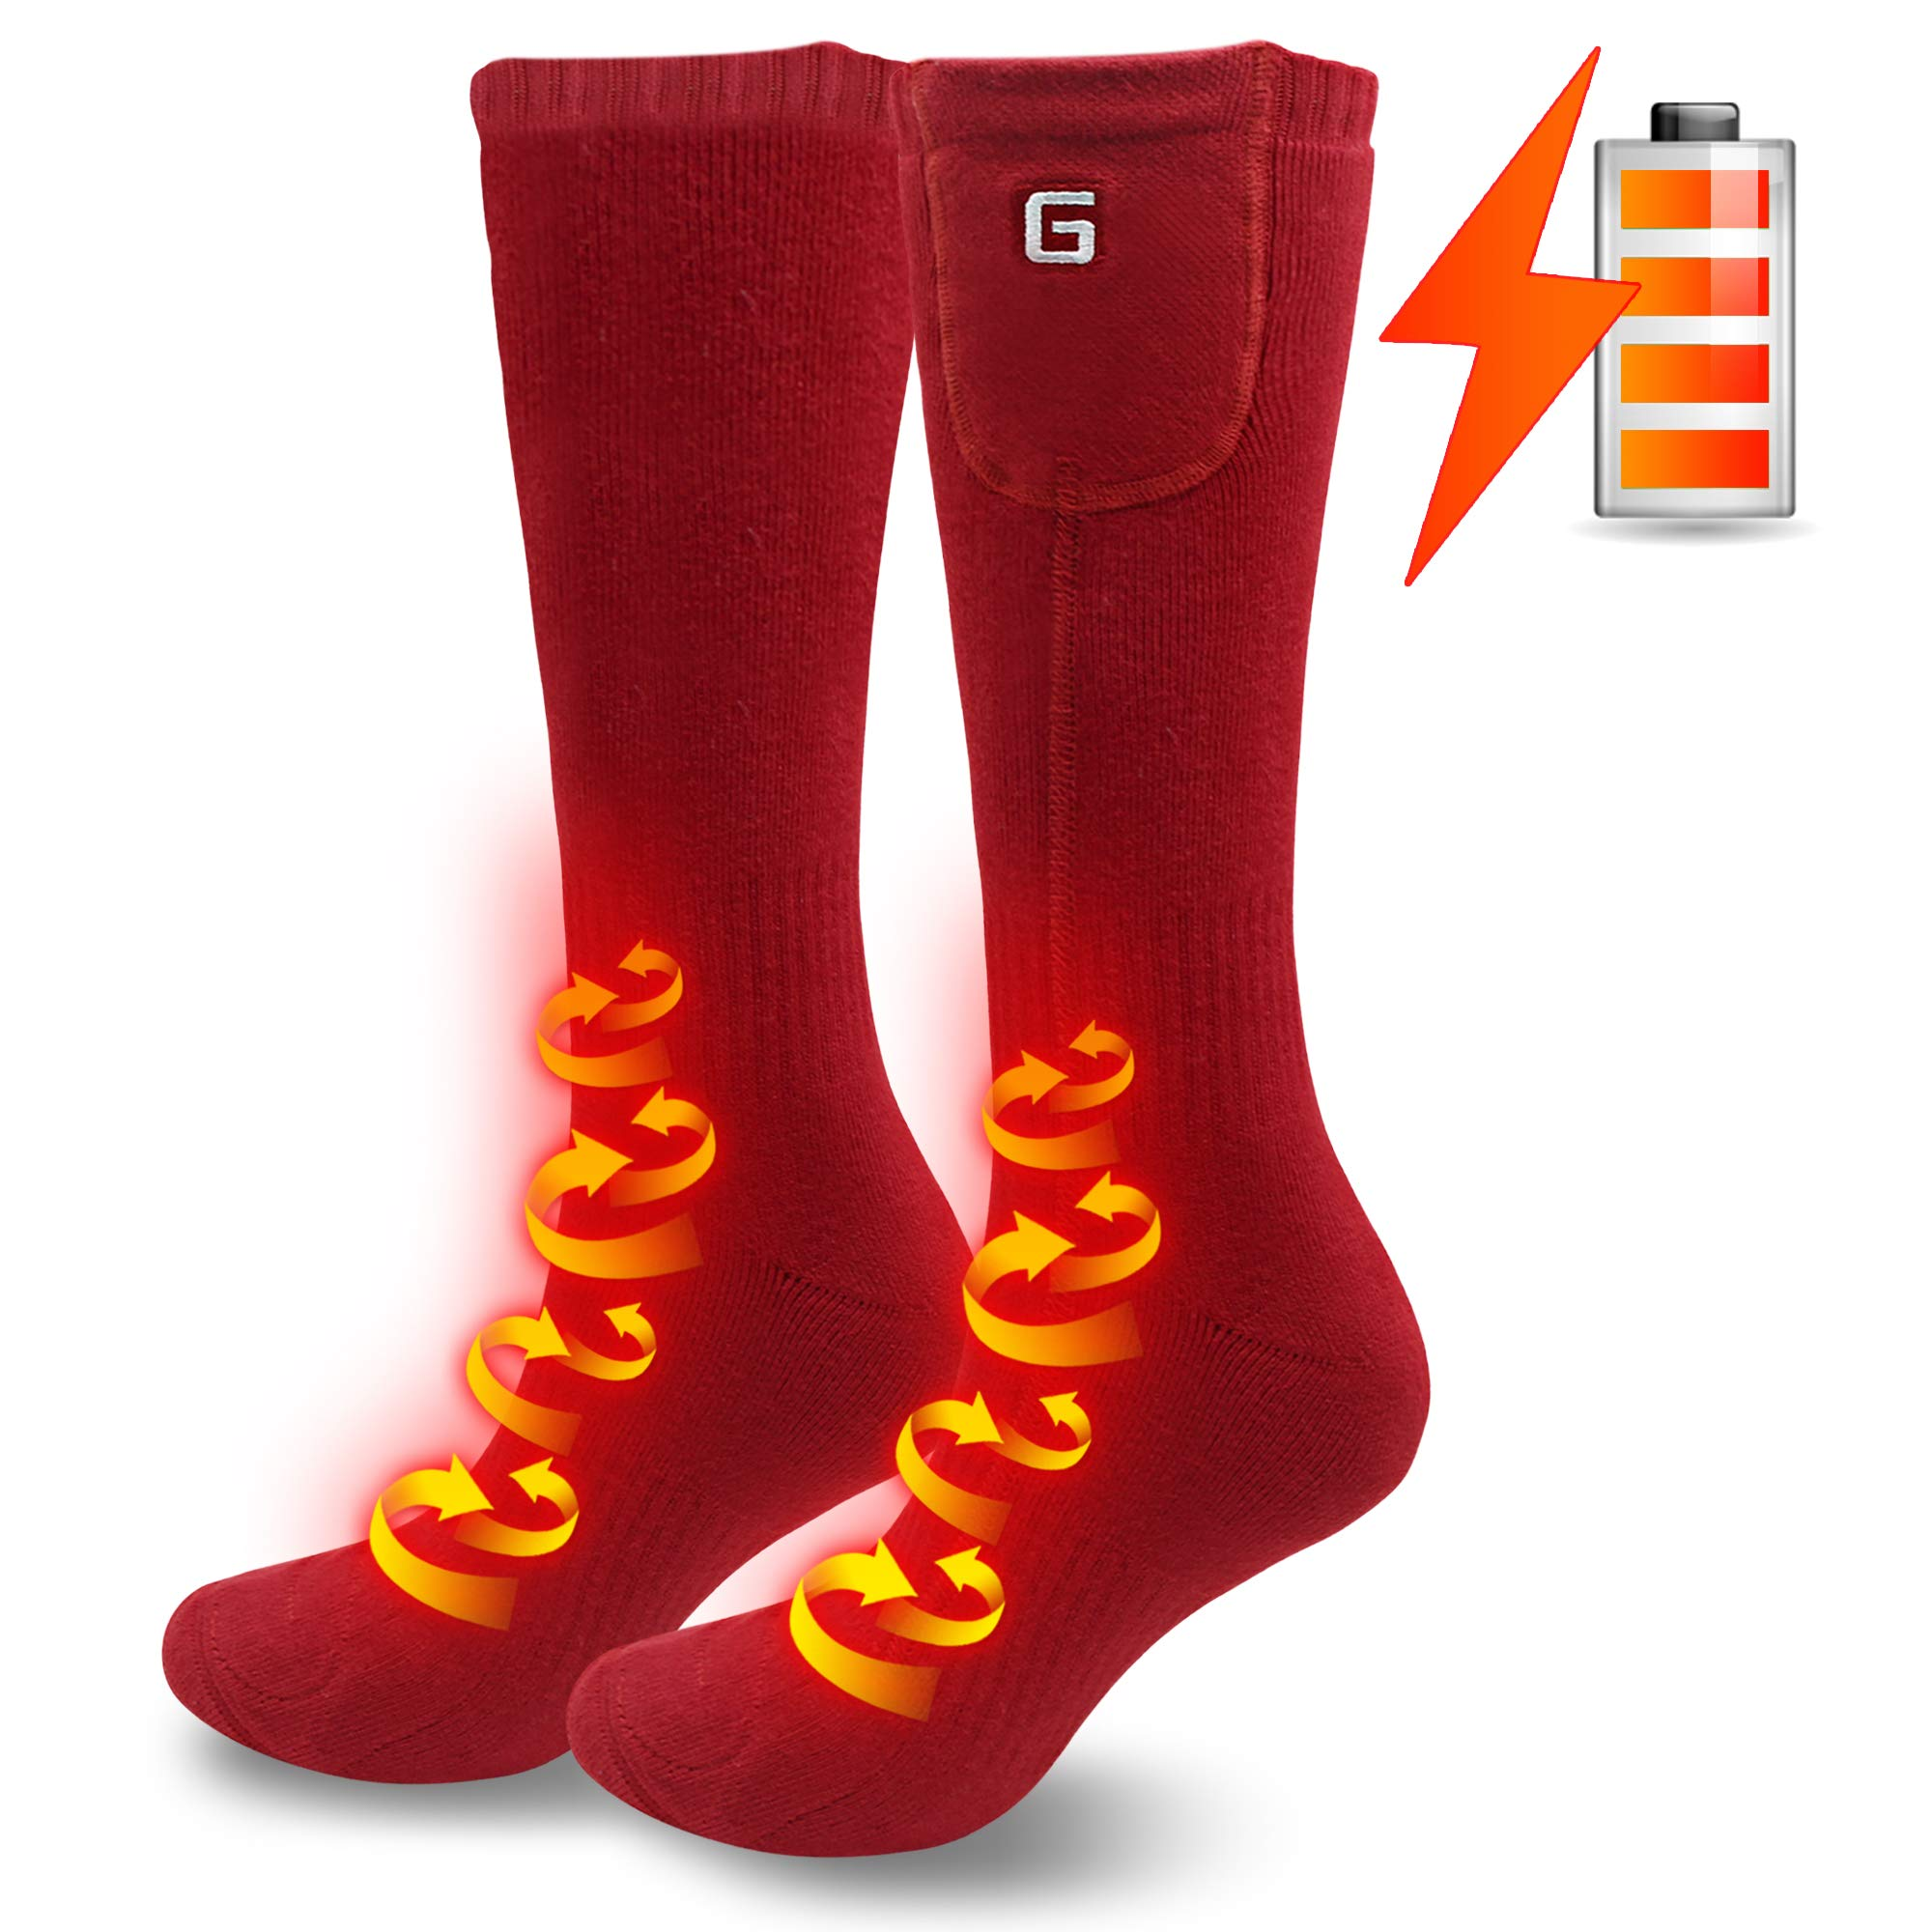 Men's Heated Hiking Socks for Cold Weather Rechargeable Batteries Thermal Heated Socks Foot Warmers for Chronically Cold Feet,Perfect for Hunting Hiking Shredding, Riding Electric Batteries Socks(Red) by MMlove